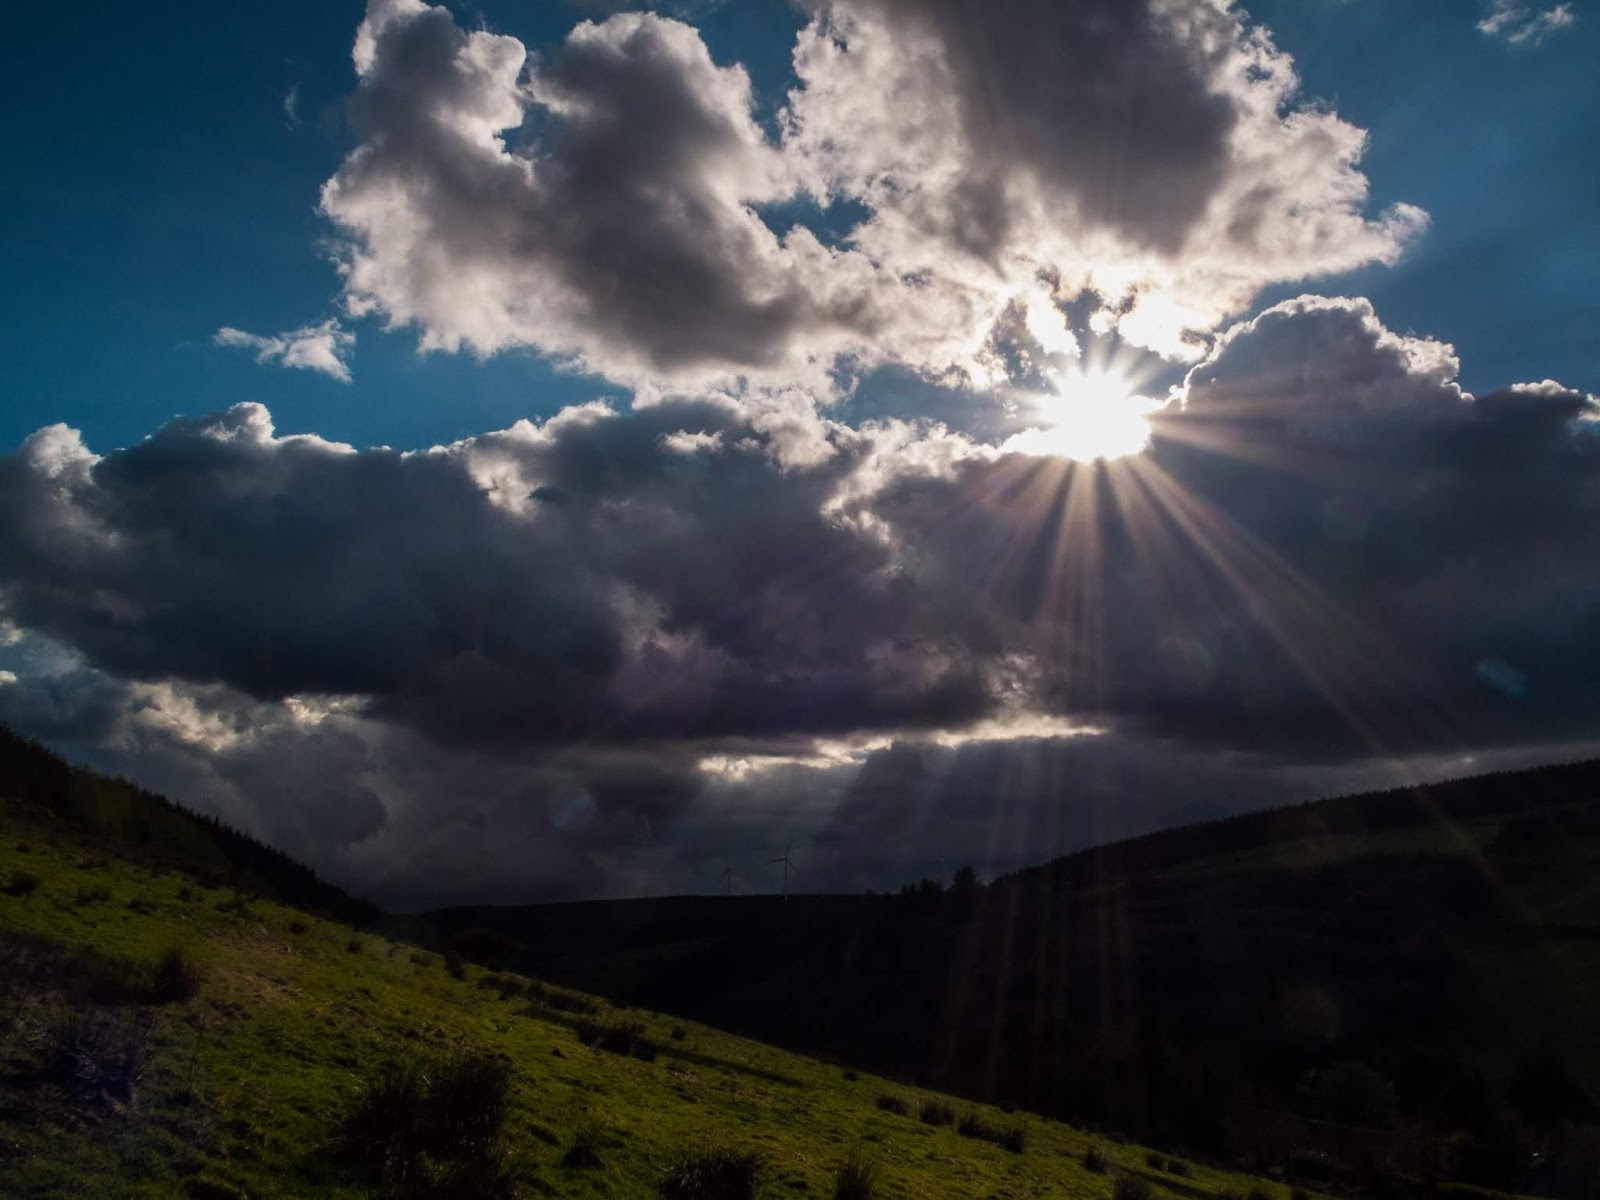 Sun shining with rays coming through clouds over a valley in Co.Cork, Ireland.